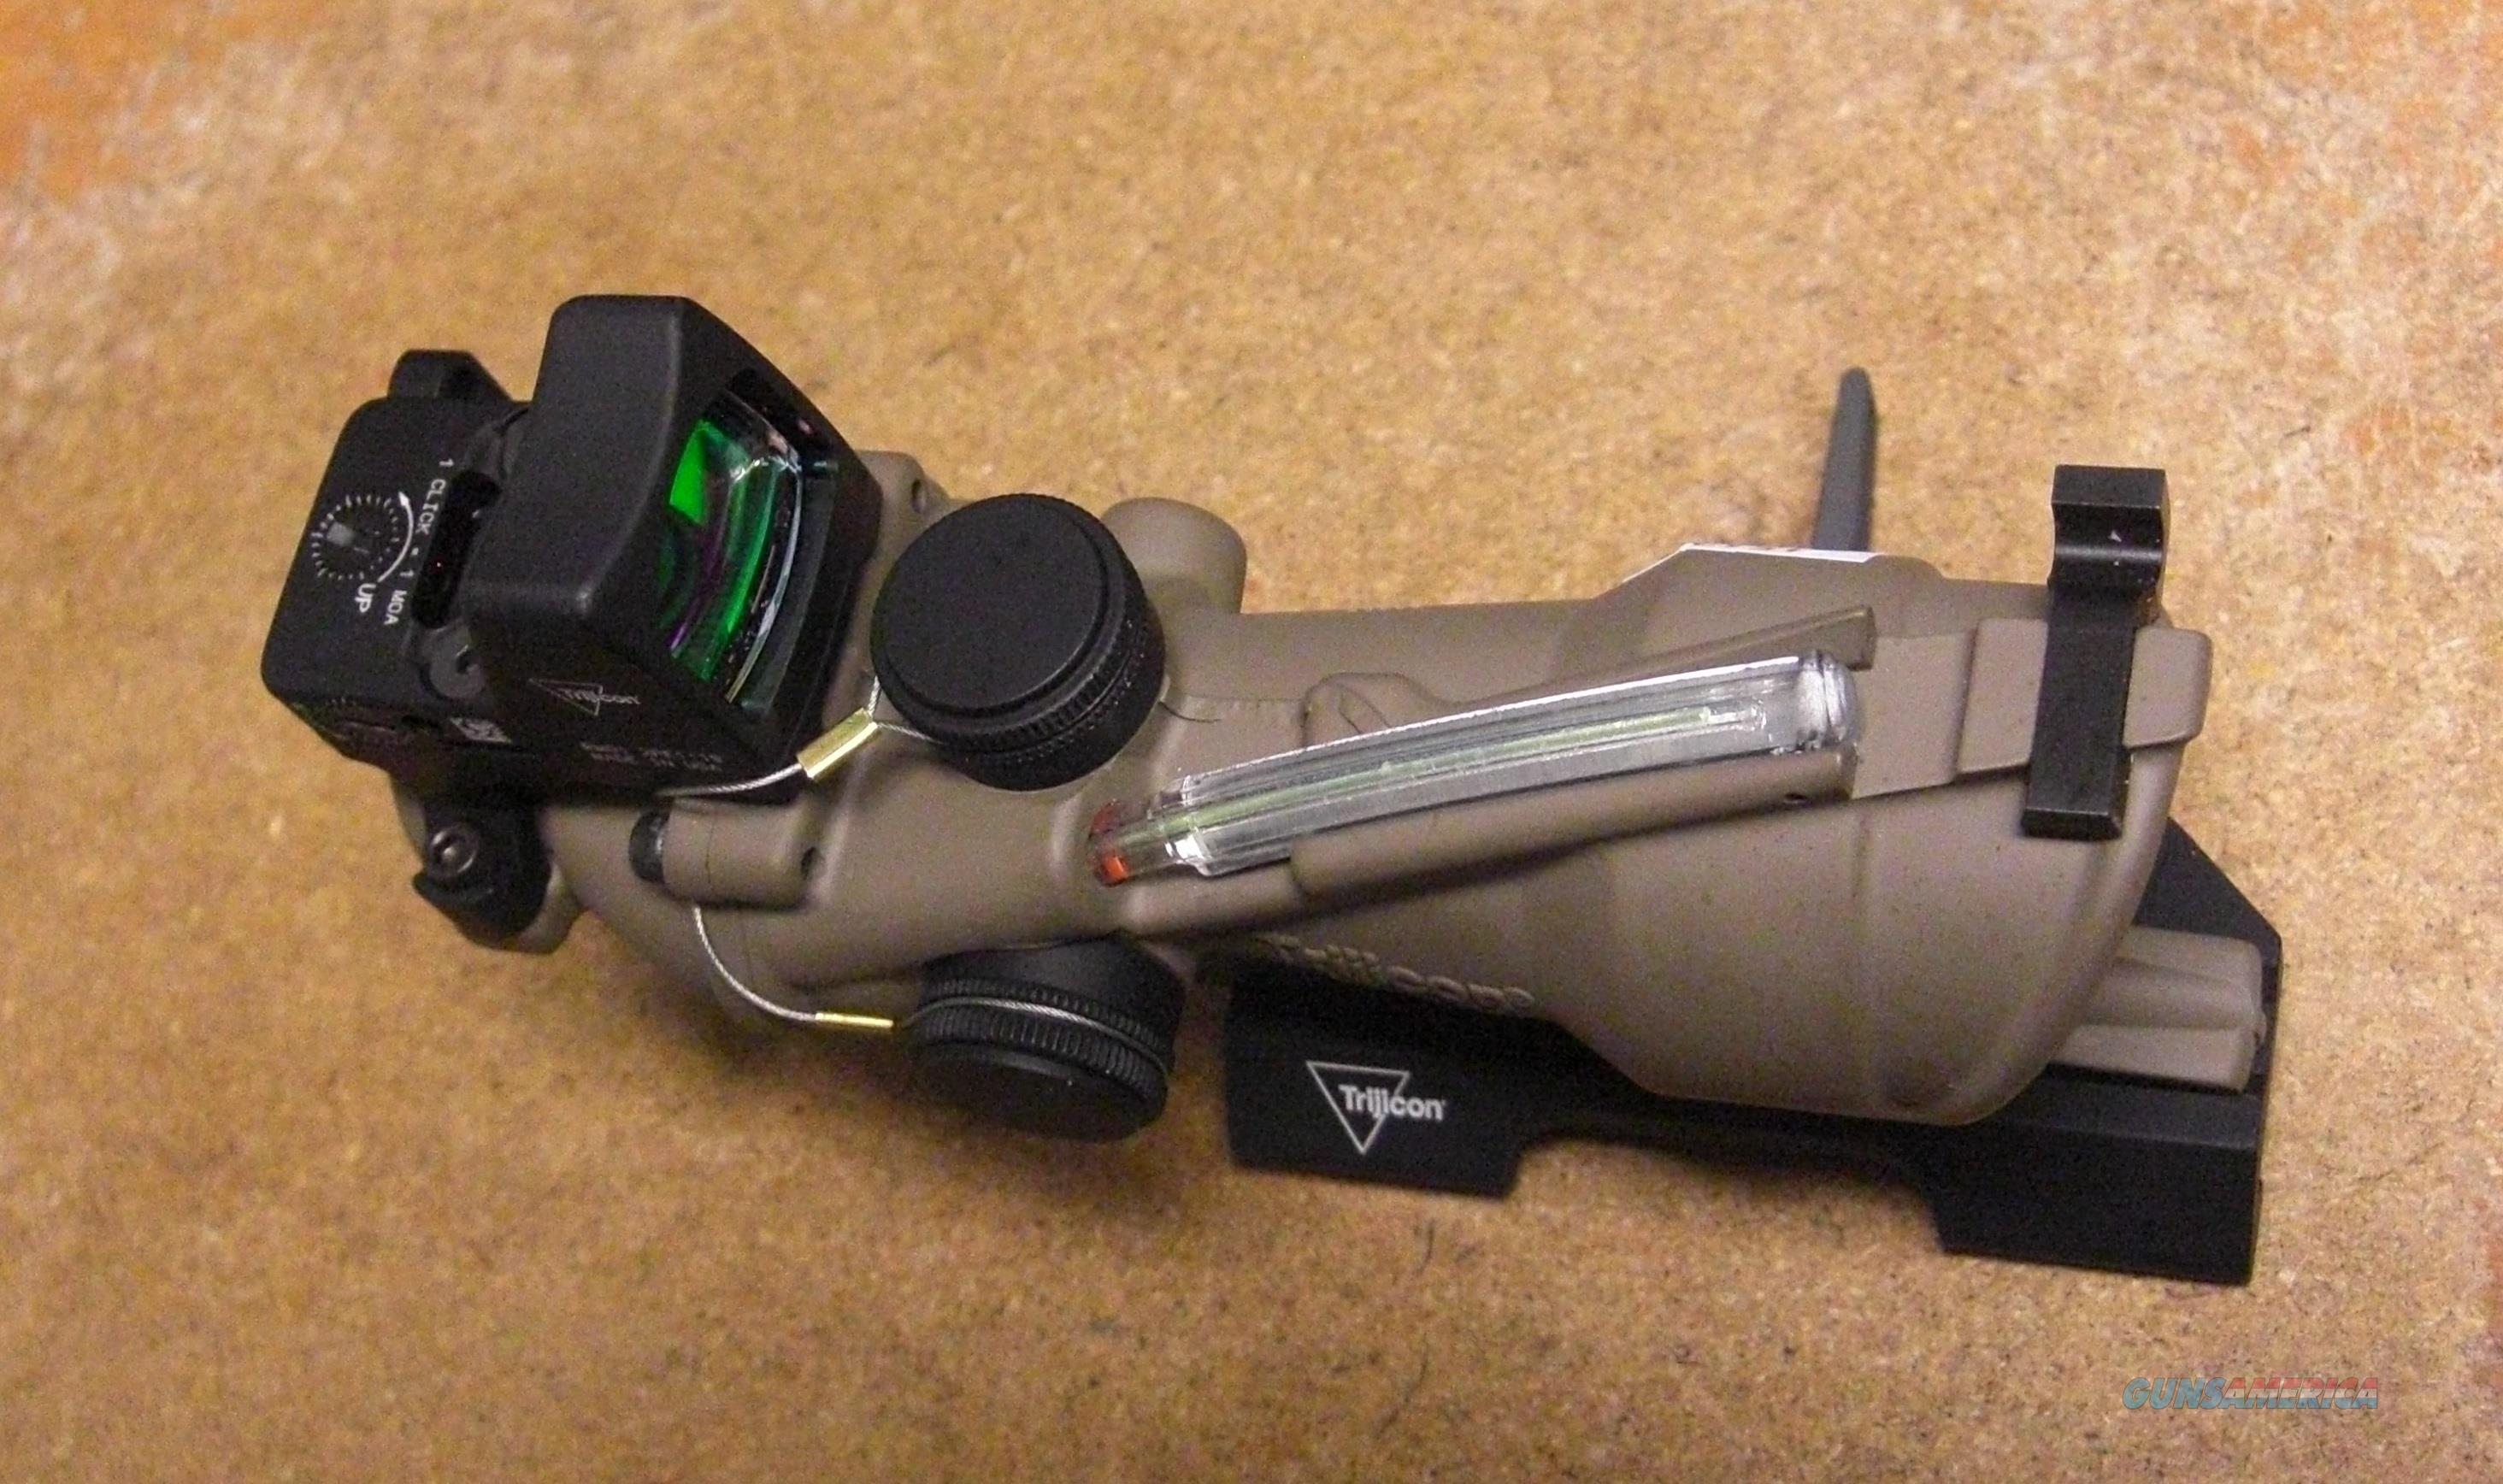 Trijicon ACOG 4x32 light green BAC Illum. Flattop reticle & red RMR dot  Non-Guns > Scopes/Mounts/Rings & Optics > Tactical Scopes > Red Dot